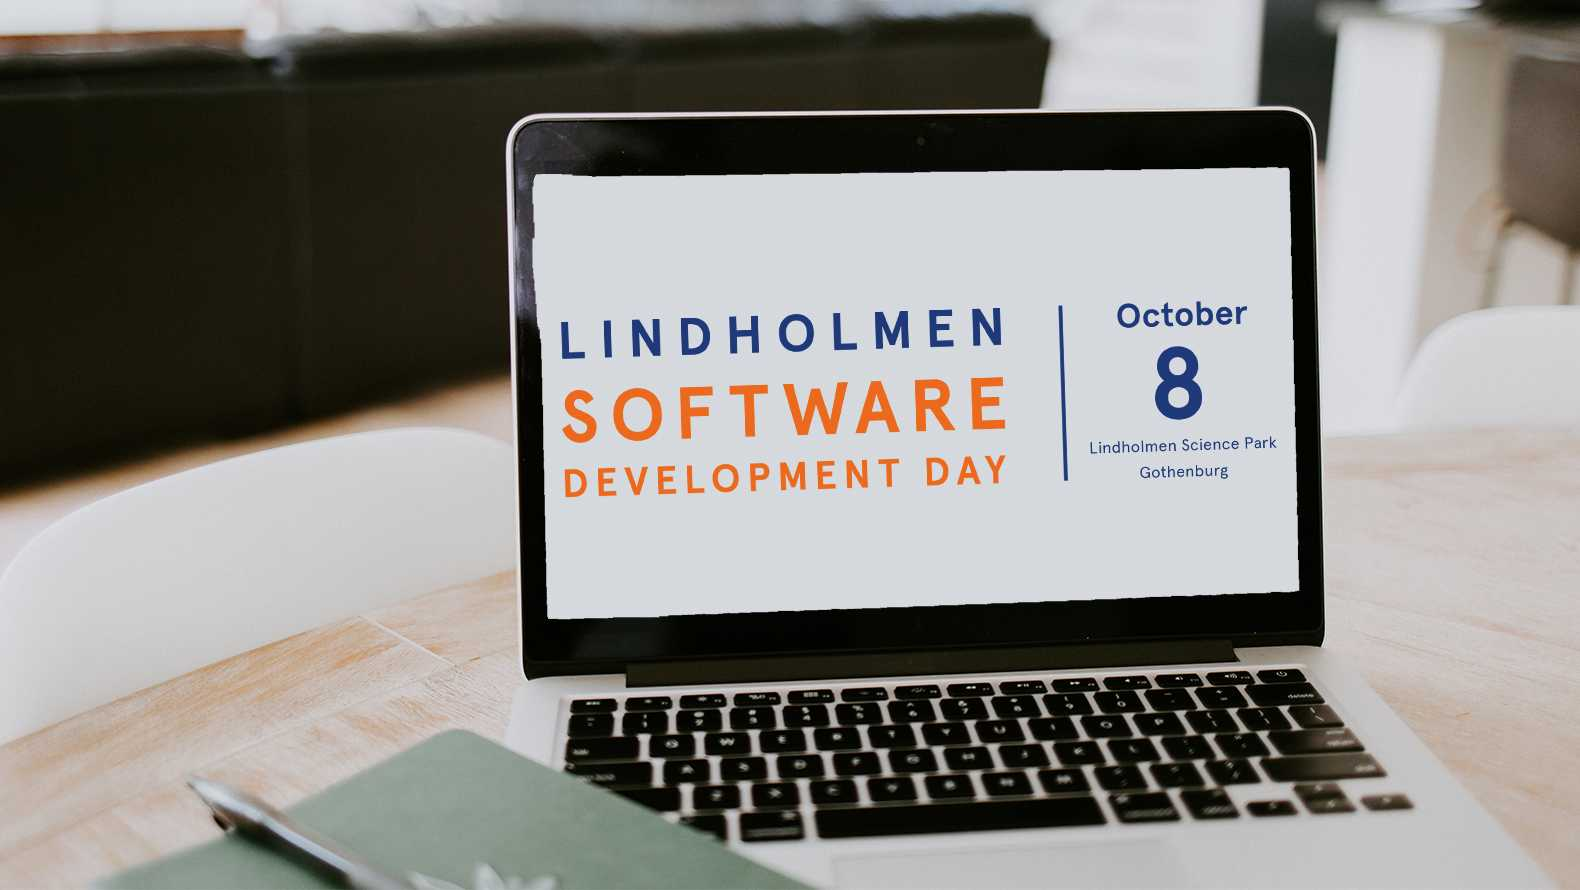 Lindholmen Software Development Day